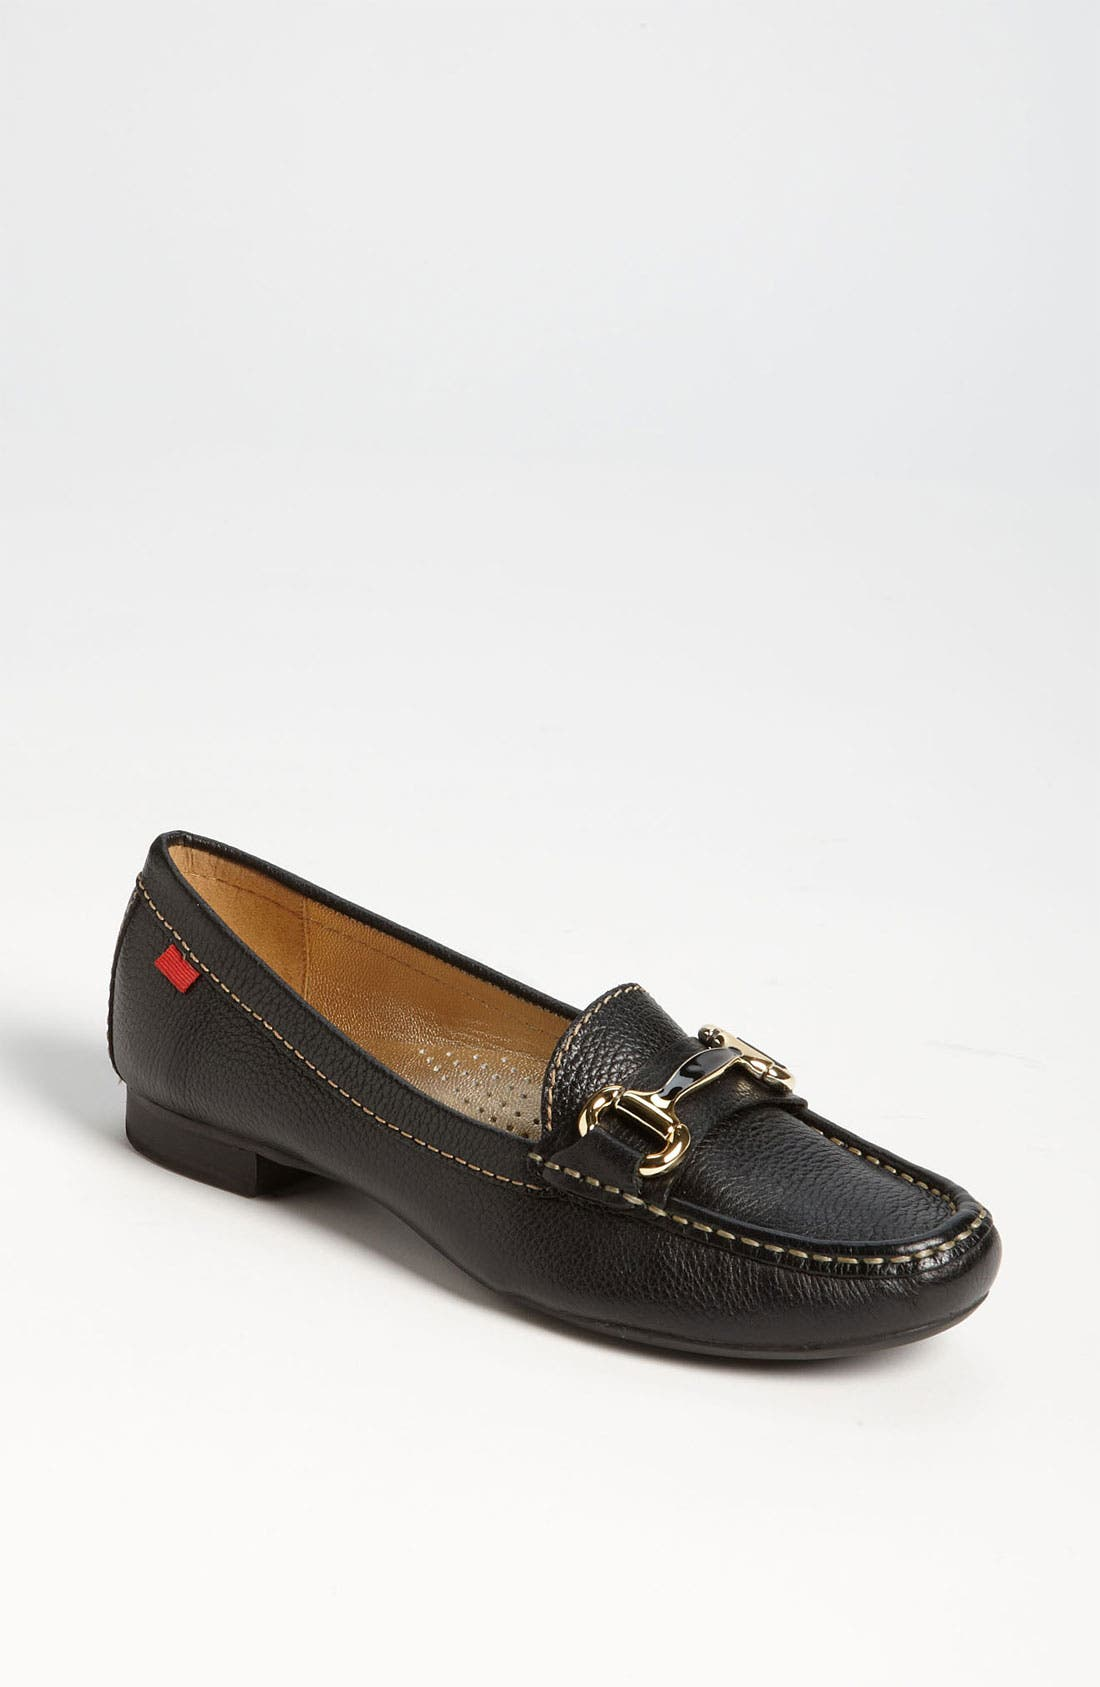 MARC JOSEPH NEW YORK, 'Grand St.' Loafer, Main thumbnail 1, color, BLACK GRAINY